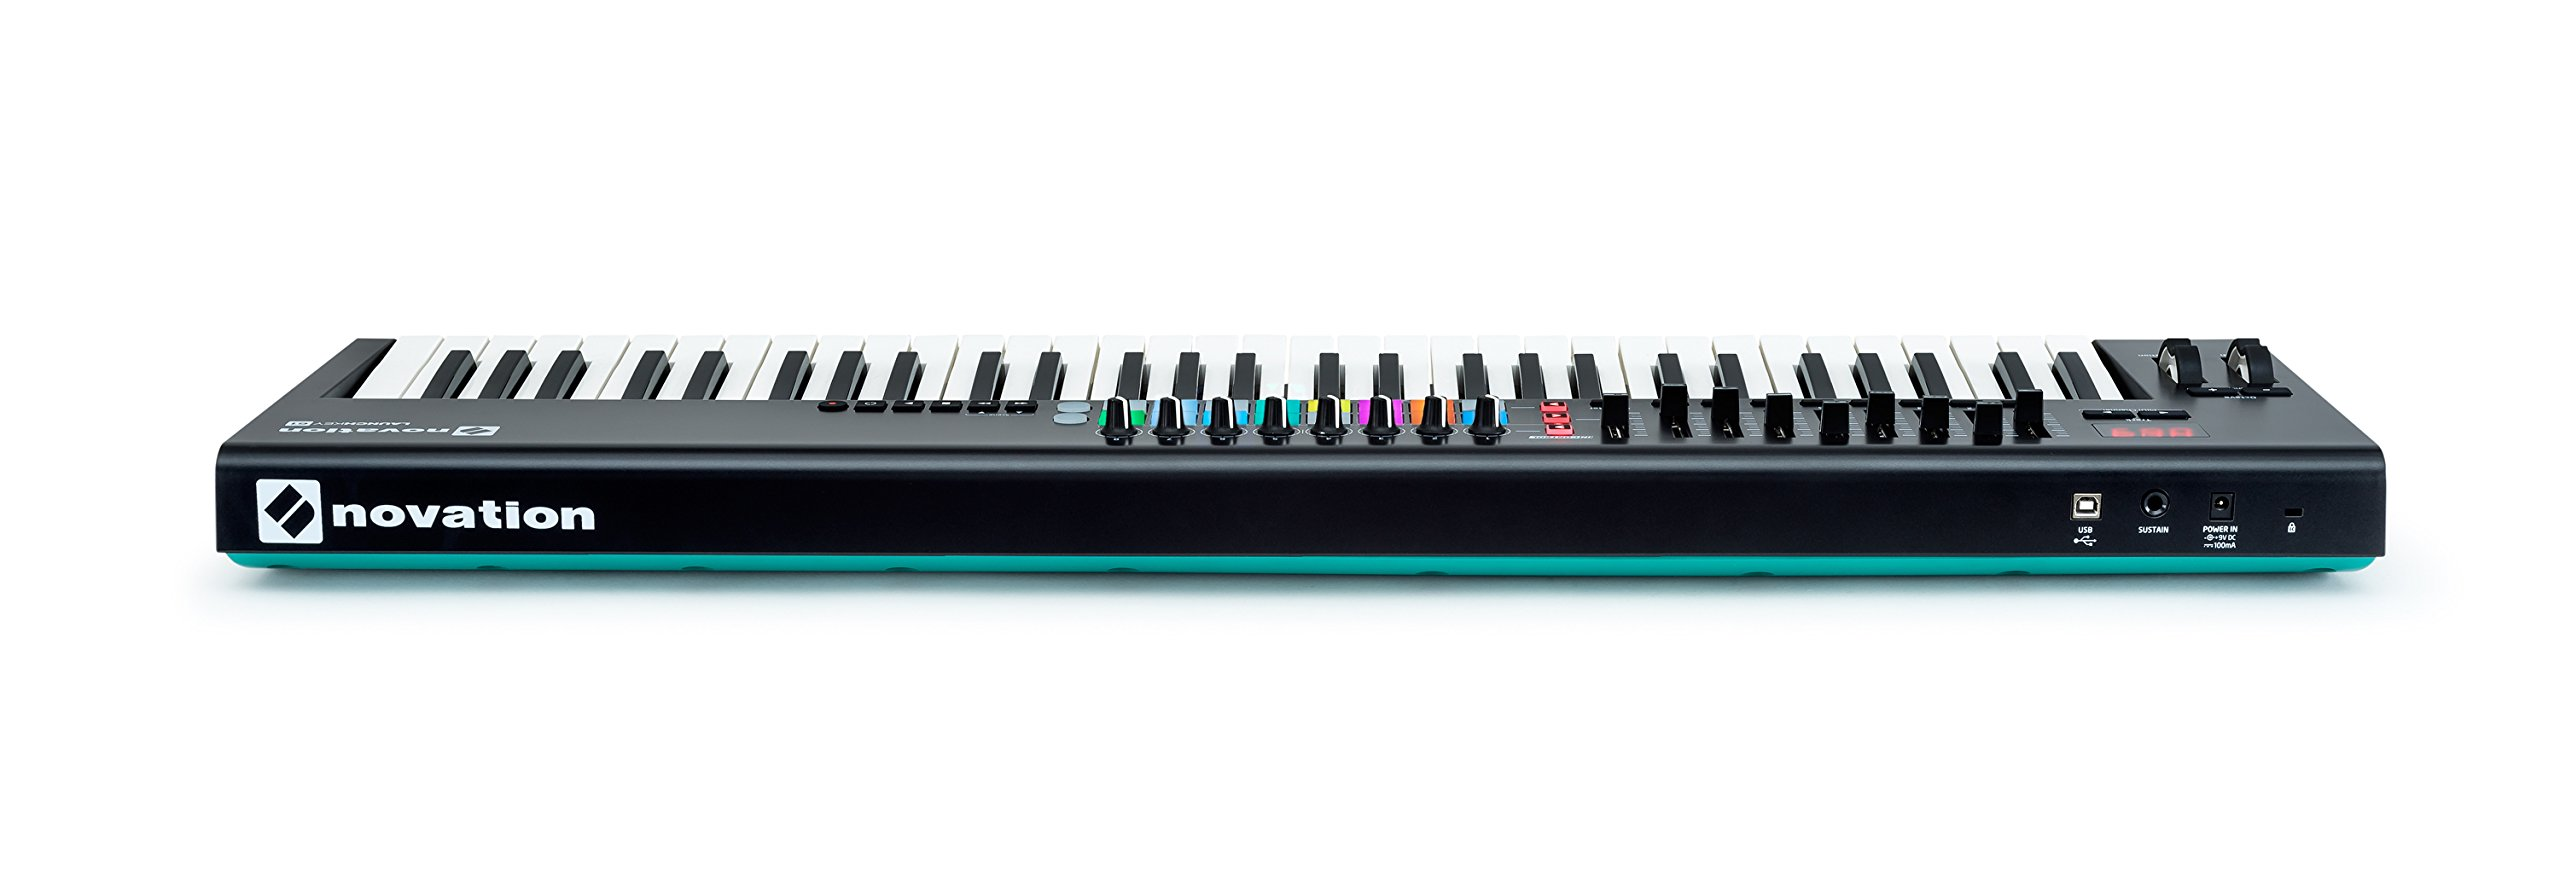 Novation Launchkey 61 USB Keyboard Controller for Ableton Live, 61-Note MK2 Version by Novation (Image #3)